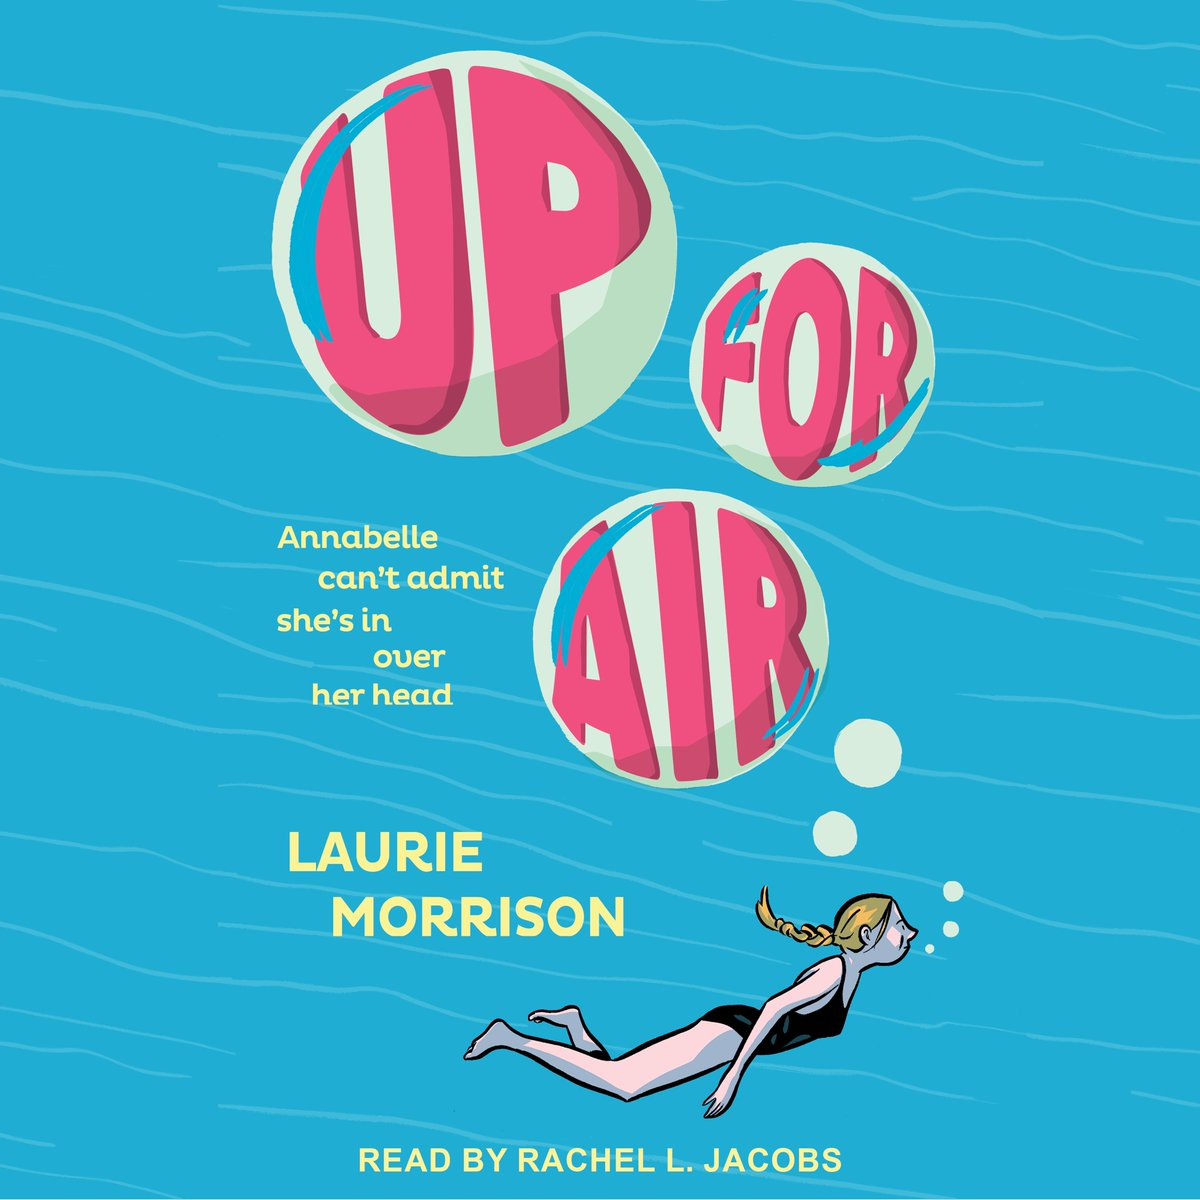 UP FOR AIR is coming out as an audiobook from Tantor Media a week from today, on 2/2! I'm so happy Annabelle's story will be available in this format and so happy it's read by the talented Rachel L. Jacobs!! tantor.com/up-for-air-lau…